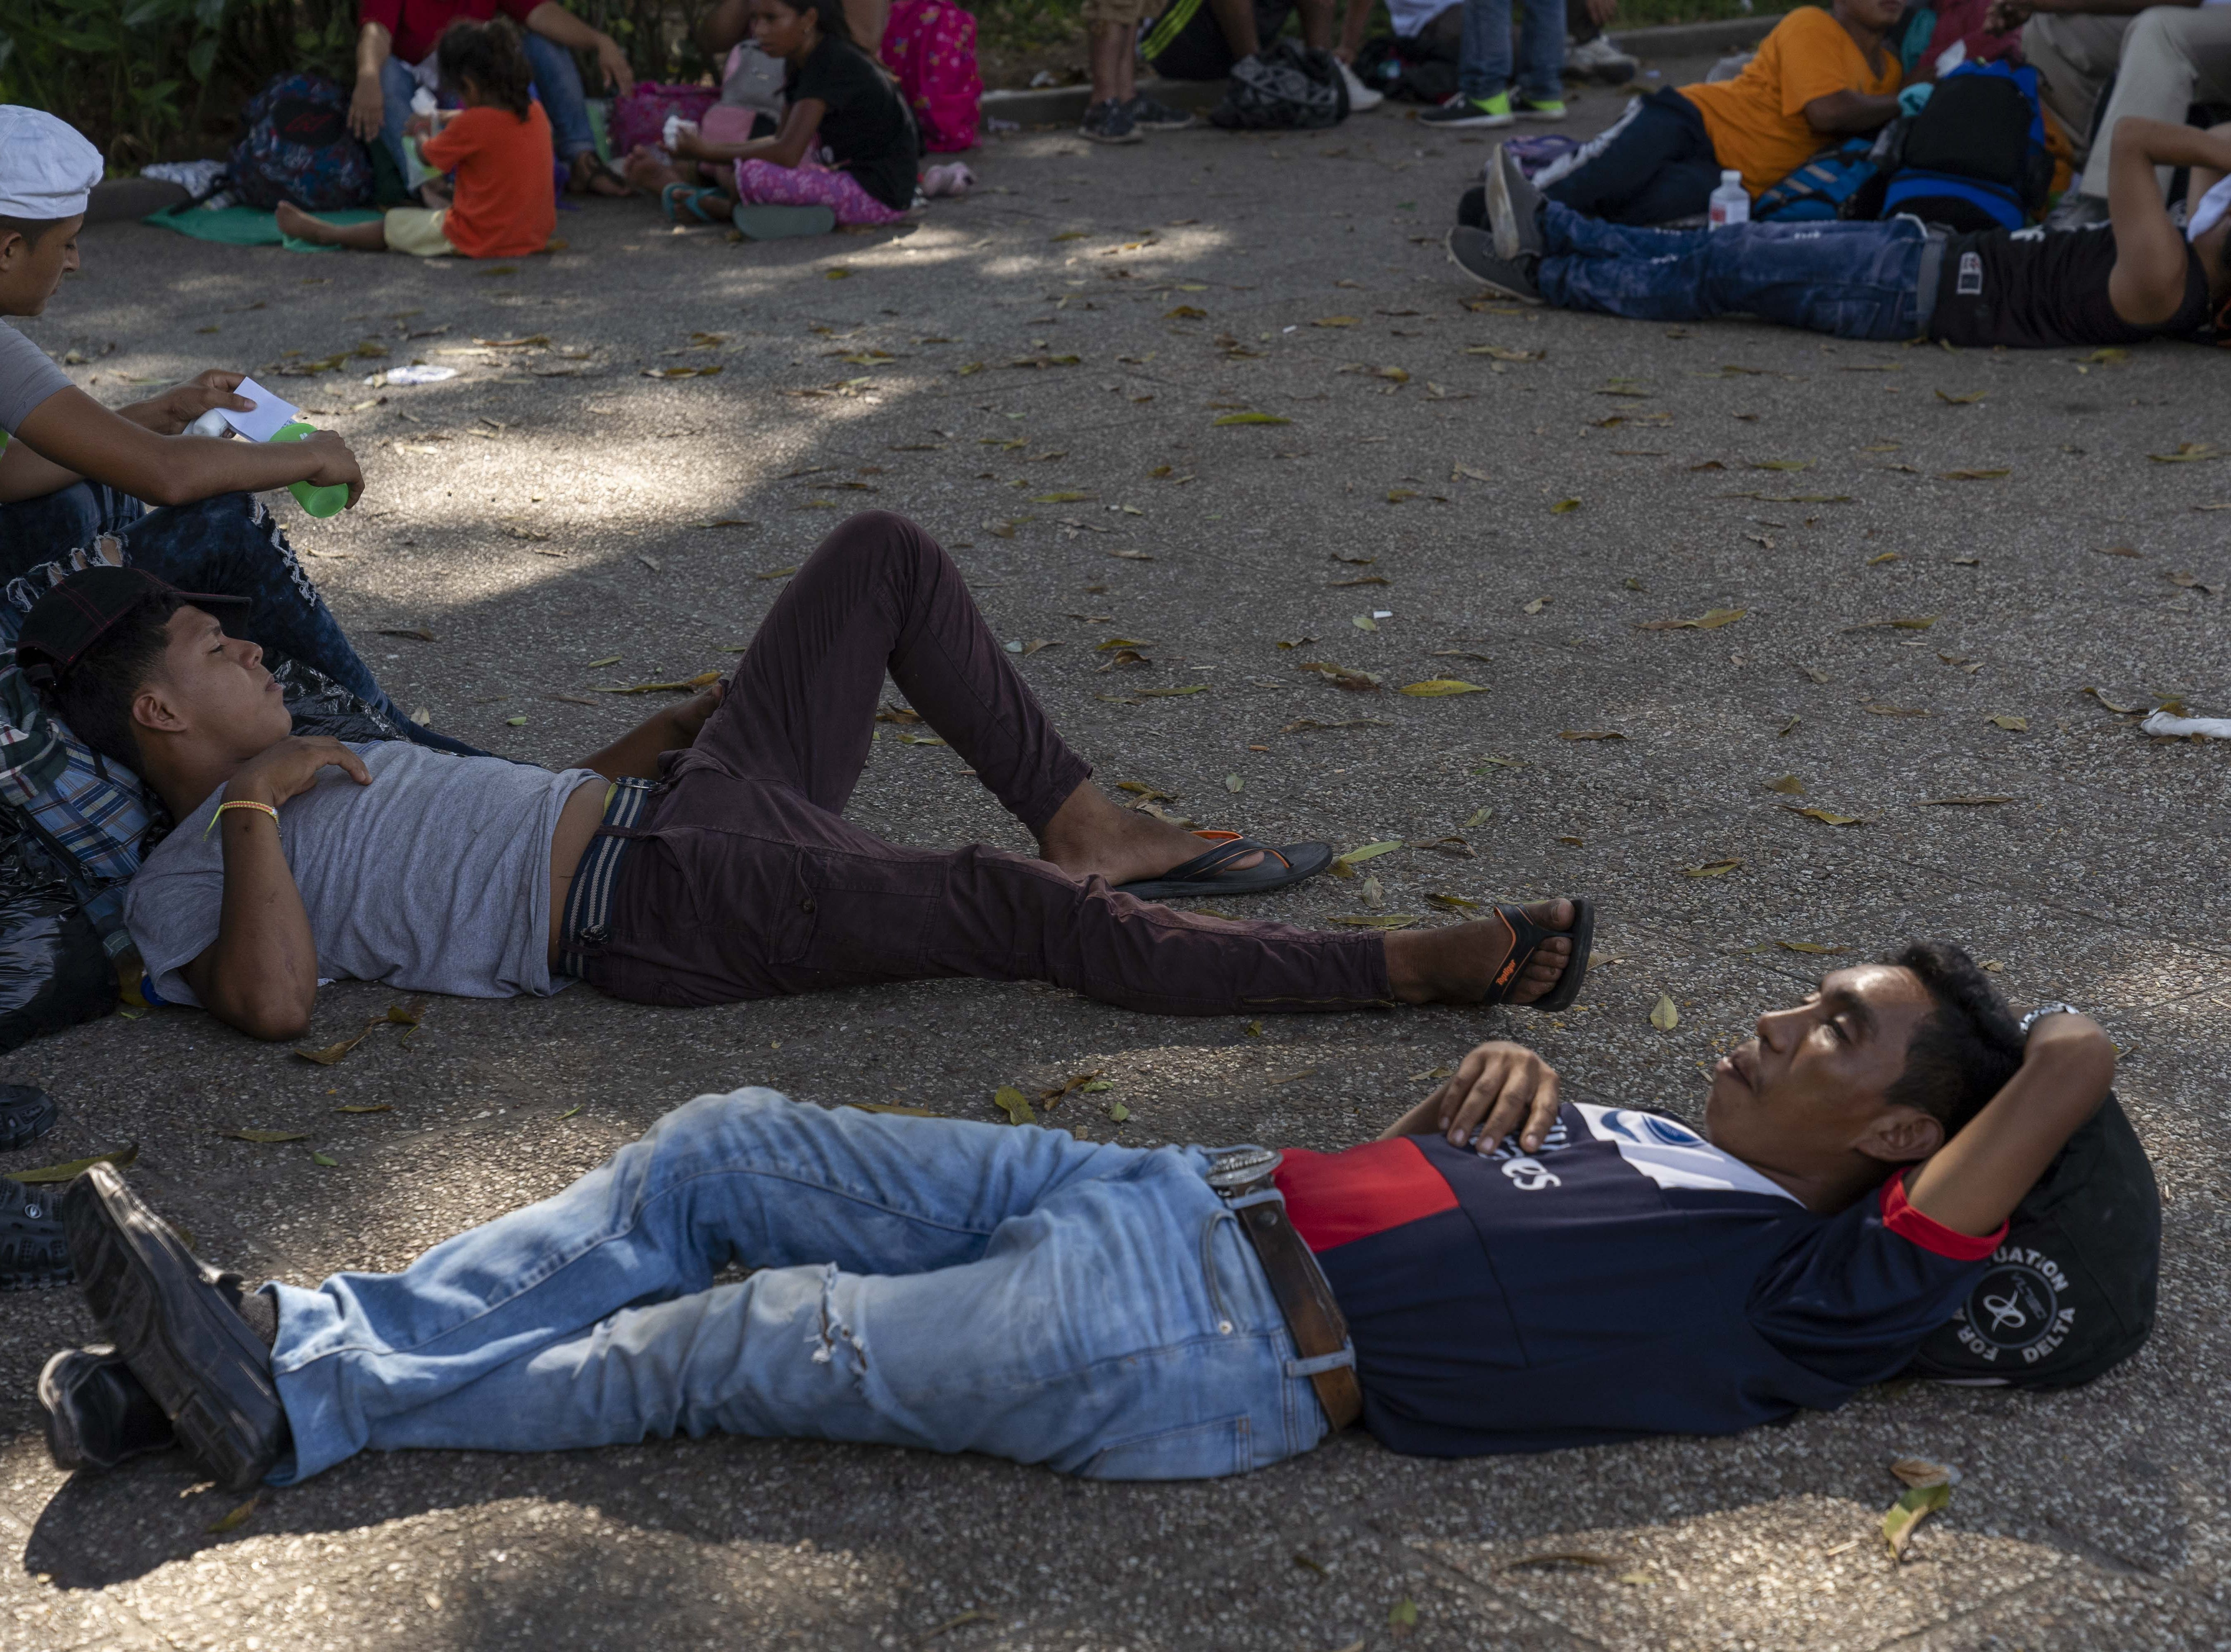 Several hundred migrants from Honduras and El Salvador gather near a park in Tecun Uman, Guatemala. They wait to cross the Suchiate River that divides Guatemala and Mexico in hopes of heading north to the United States. Under pressure from the United States, Mexico shut a bridge in an effort to halt the migrants, mostly Hondurans, from crossing the border into Mexico.